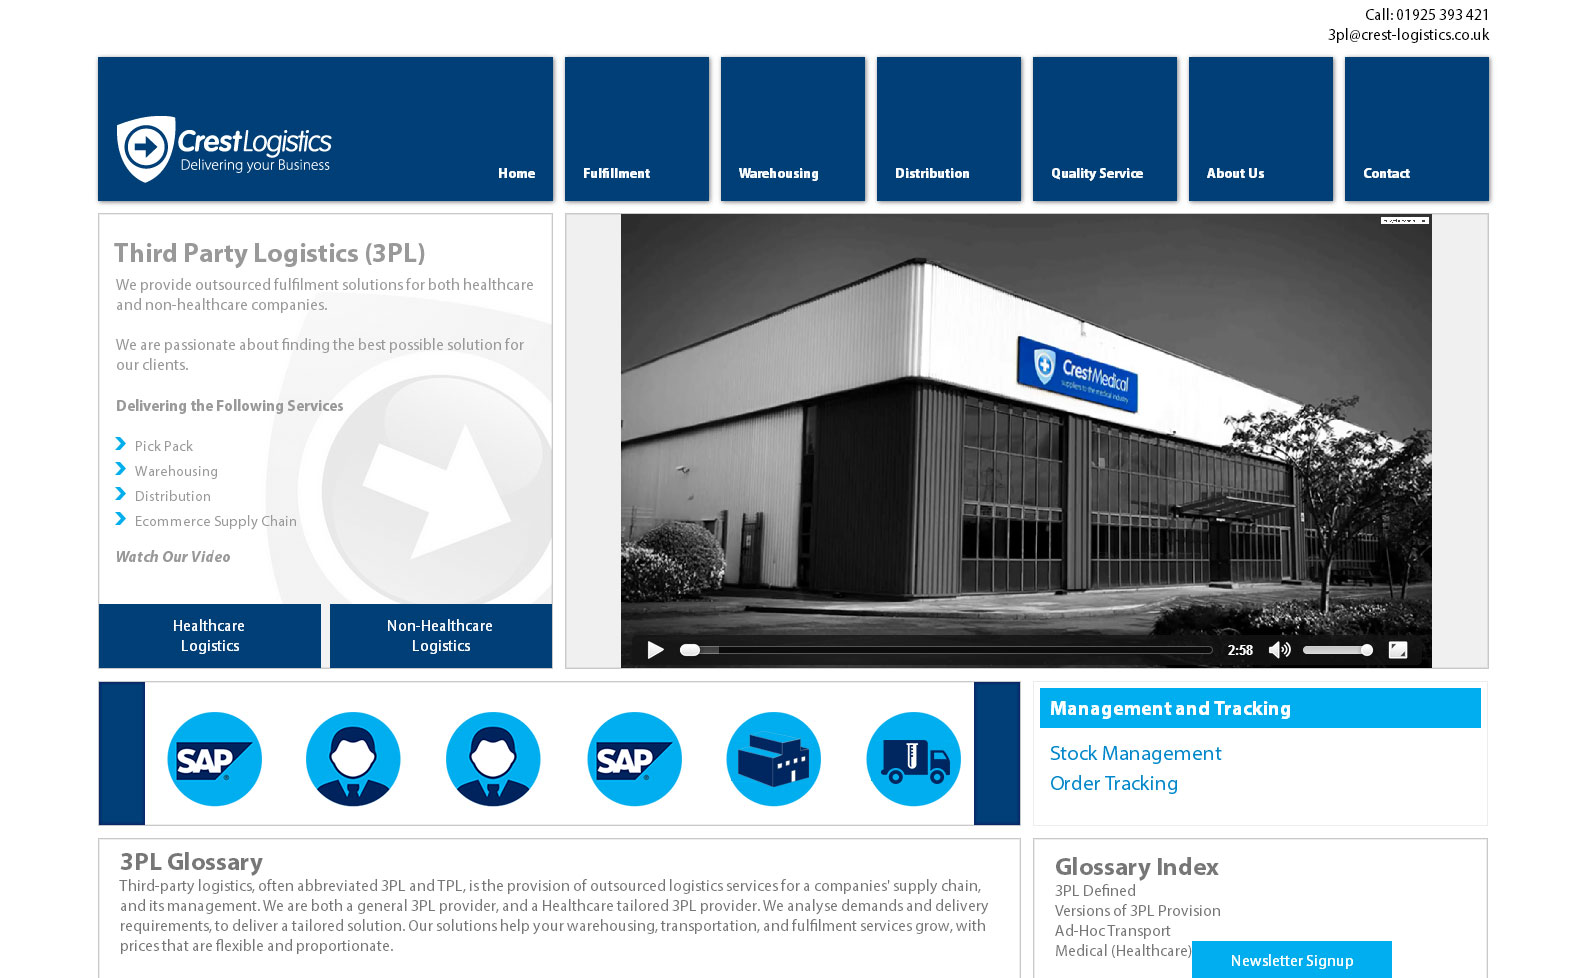 Crest logistics website